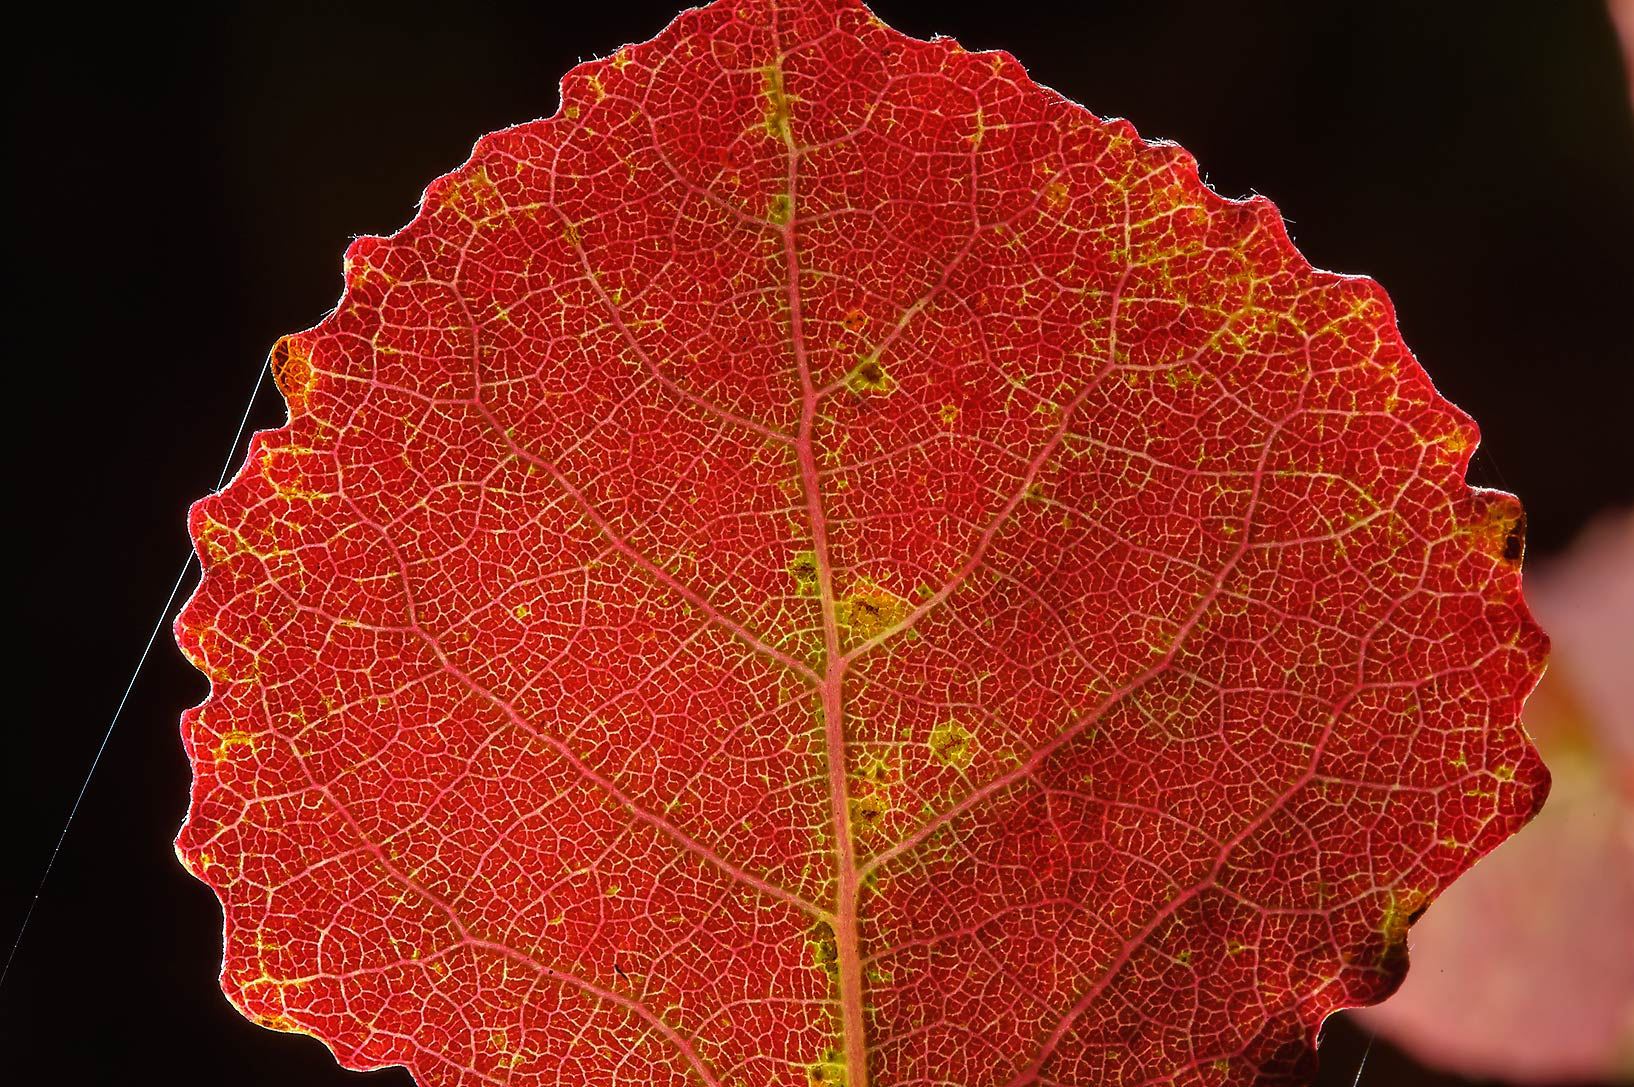 Red leaf of aspen near Lembolovo, 45 miles north from St.Petersburg. Russia